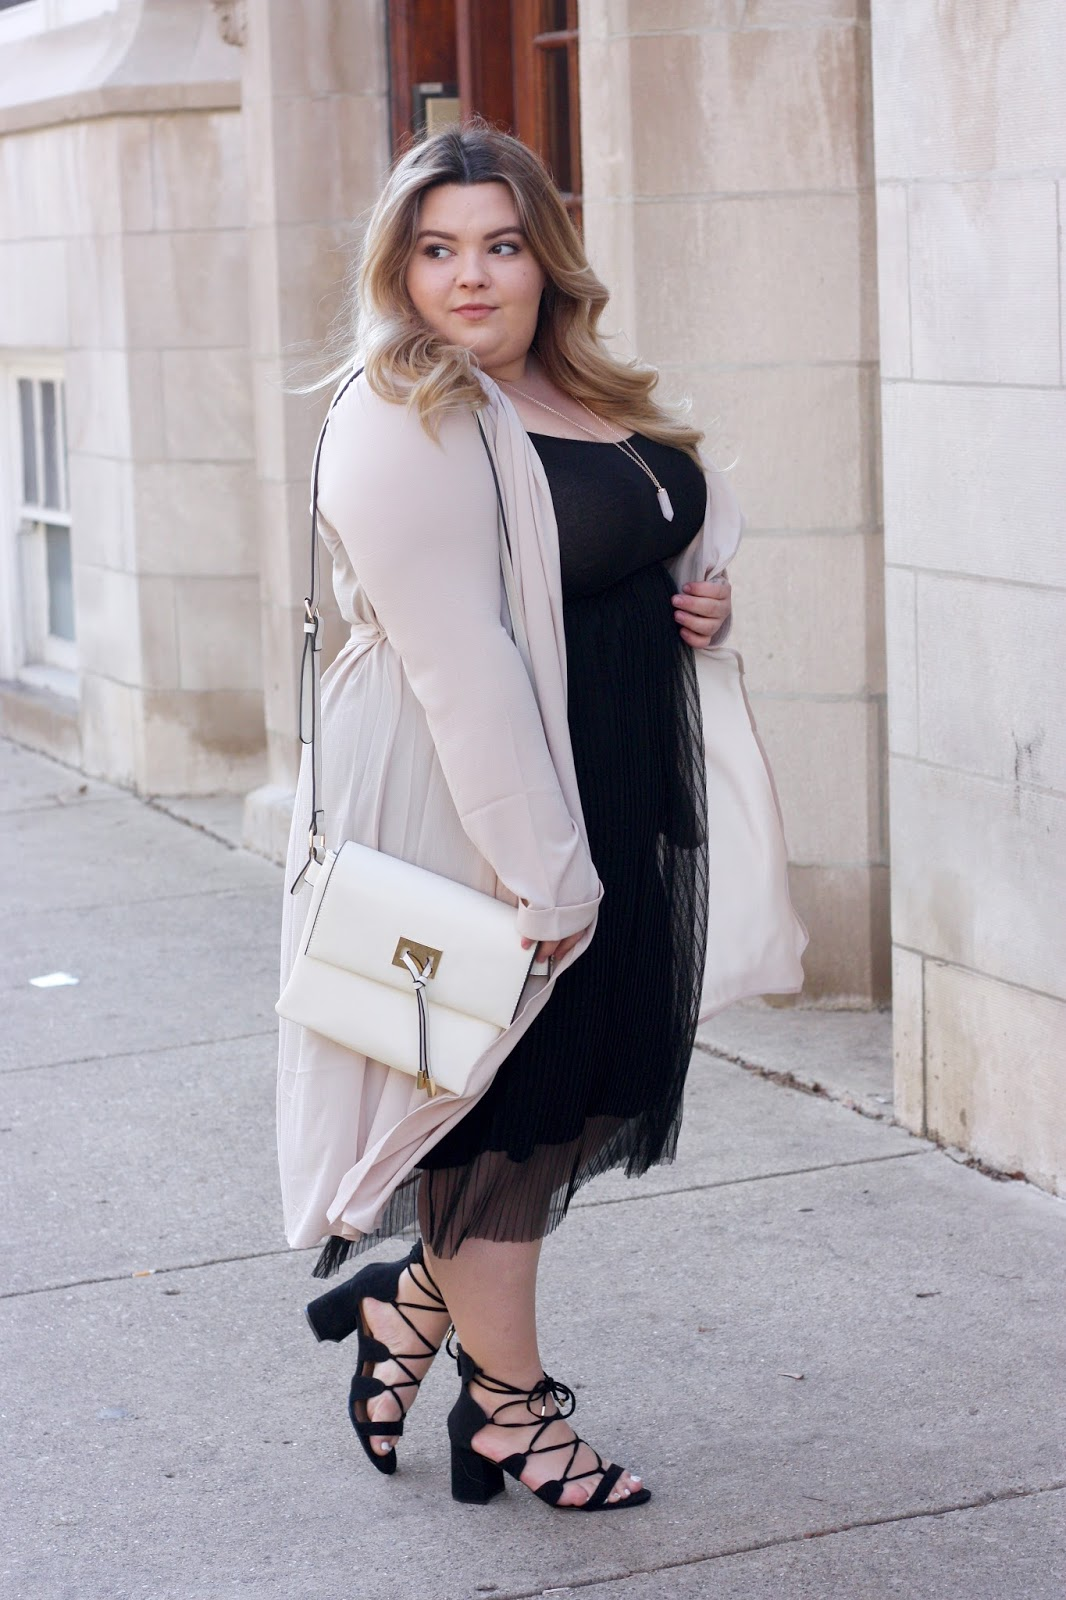 plus size trench coat, plus size duster, natalie craig, natalie in the city, plus size fashion blogger, plus size fashion inspiration, forever 21 plus, pleated tulle dress, chicago blogger, midwest, blush colors, fashion, body positive